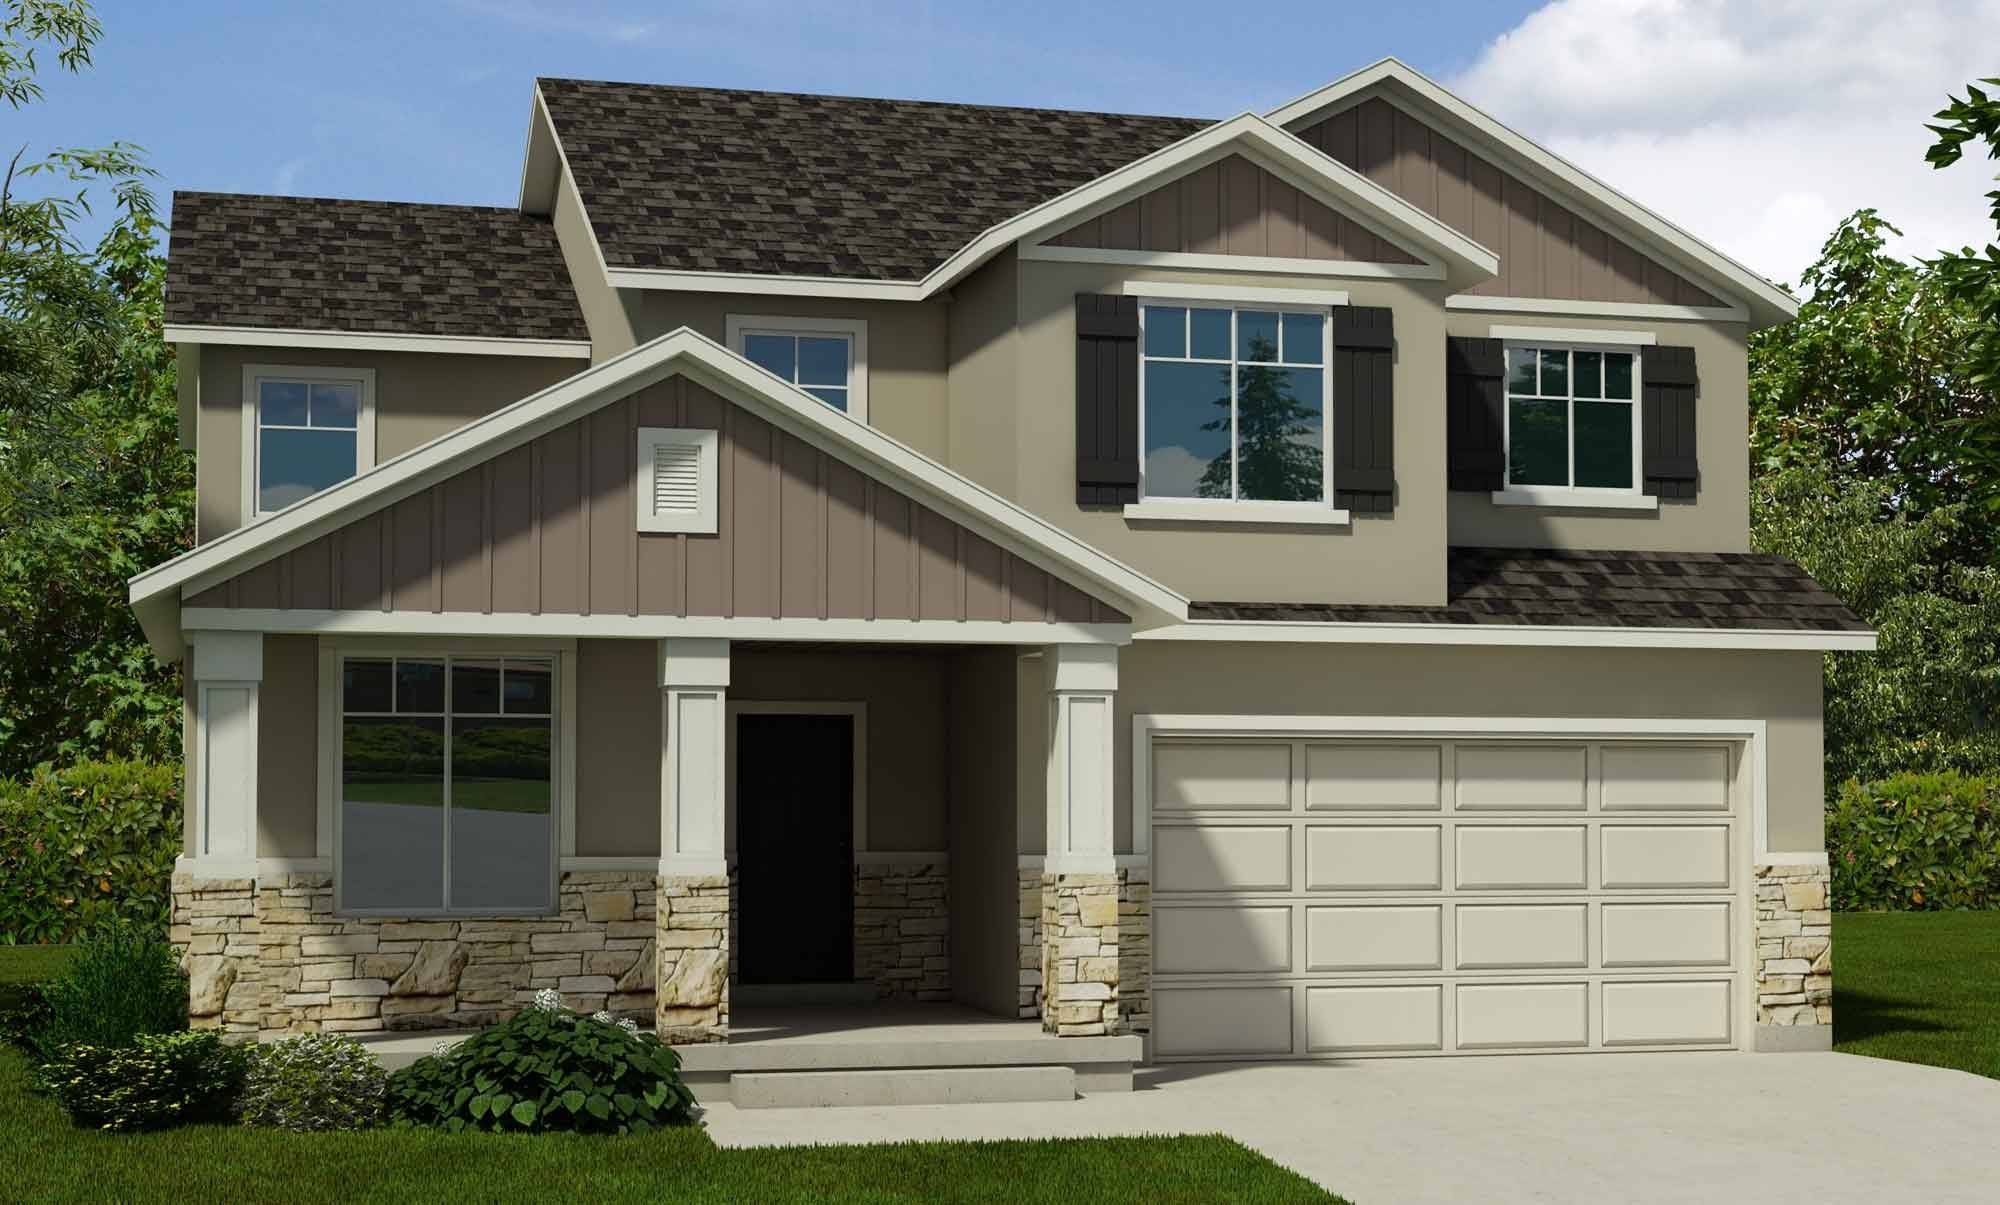 Sierra Parkside Alpine Homes I Like This Floor Plan Build Your Own House Home Building A House